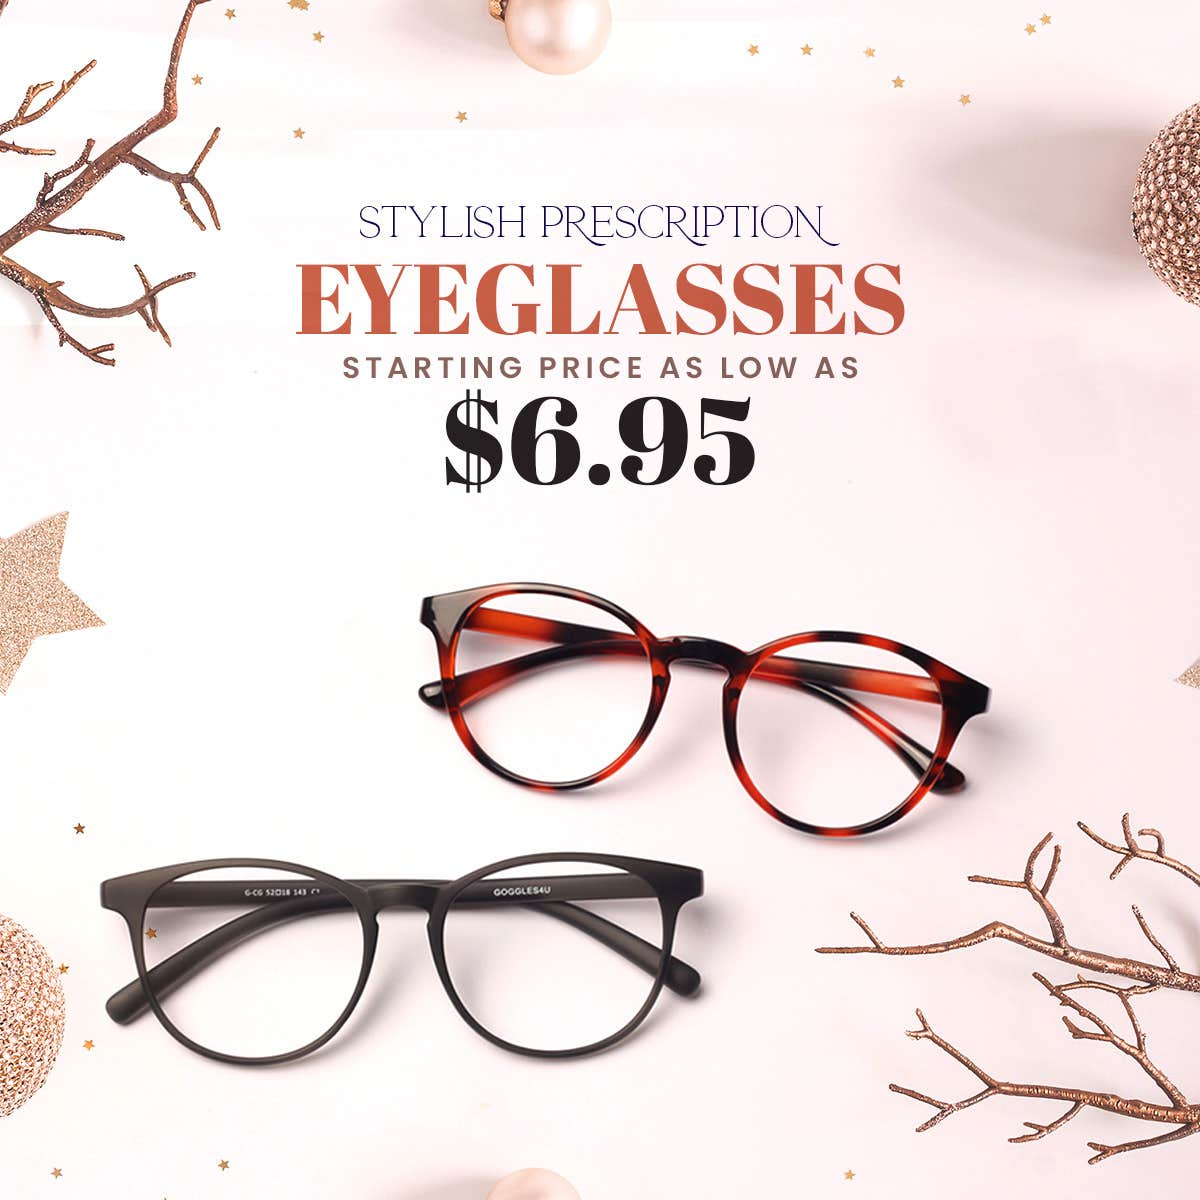 Prescription Eyeglasses Starting From $6.95